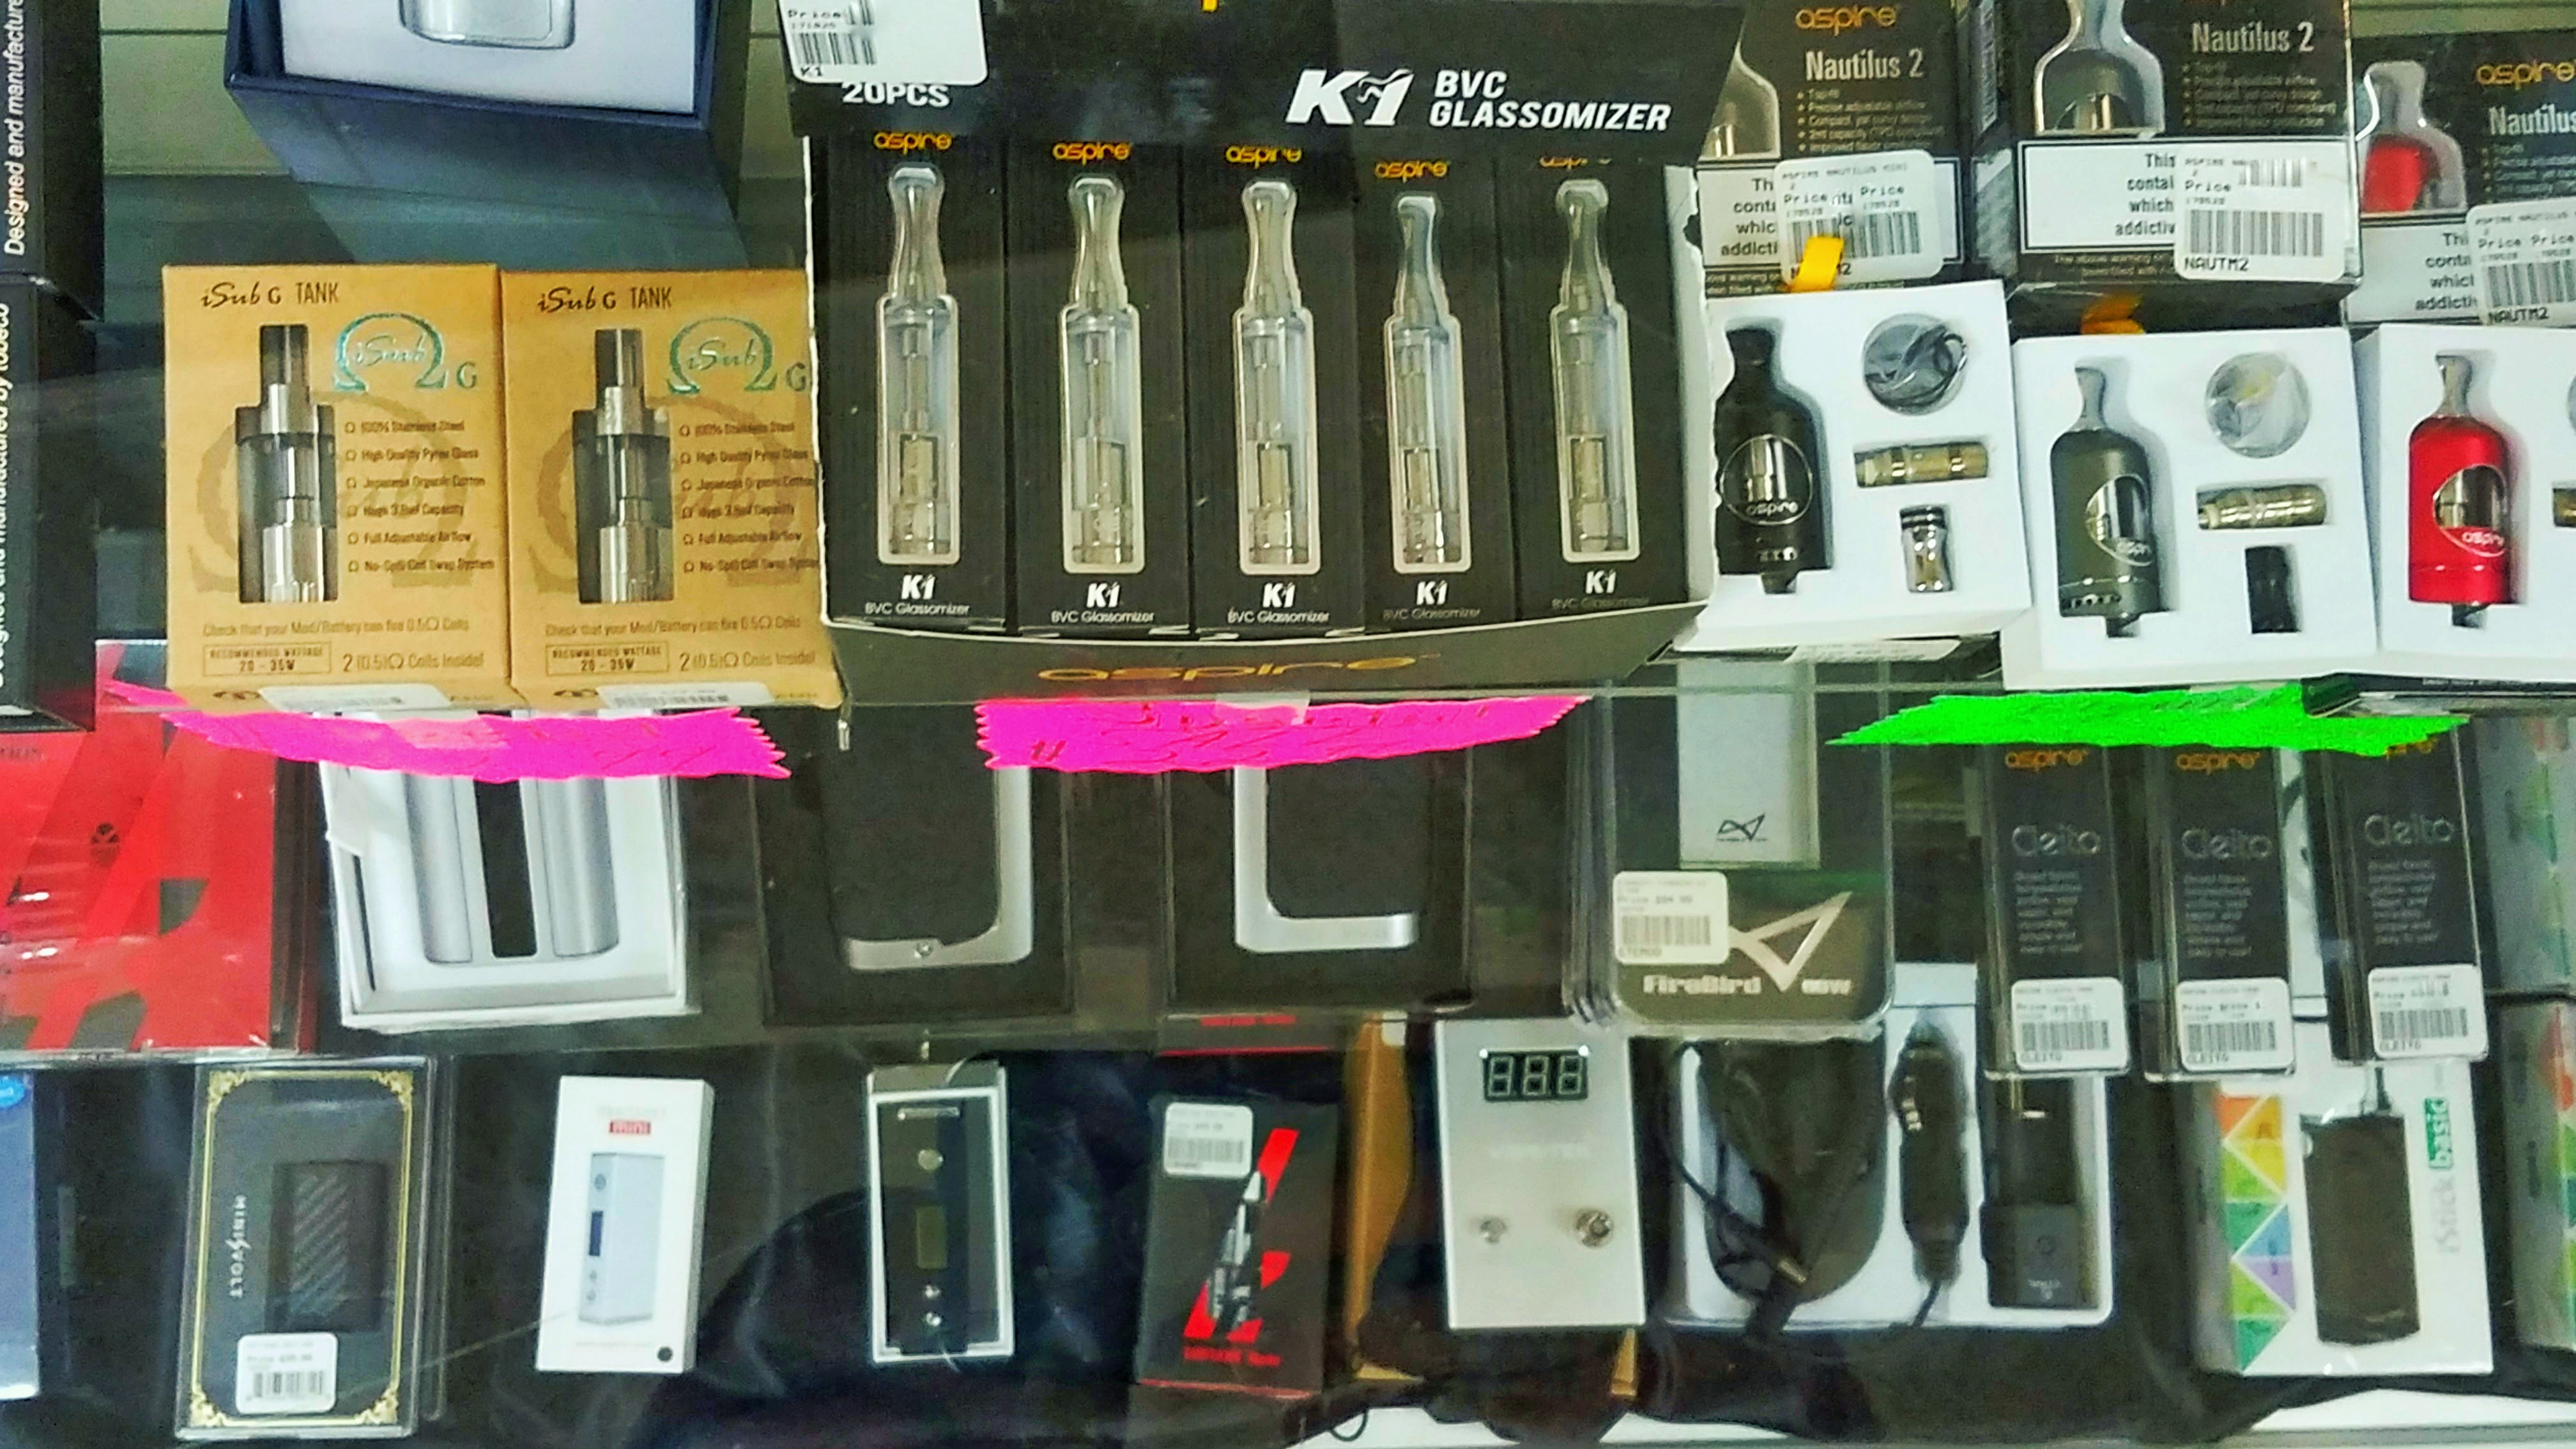 K1 Vaporizers in Store and More....